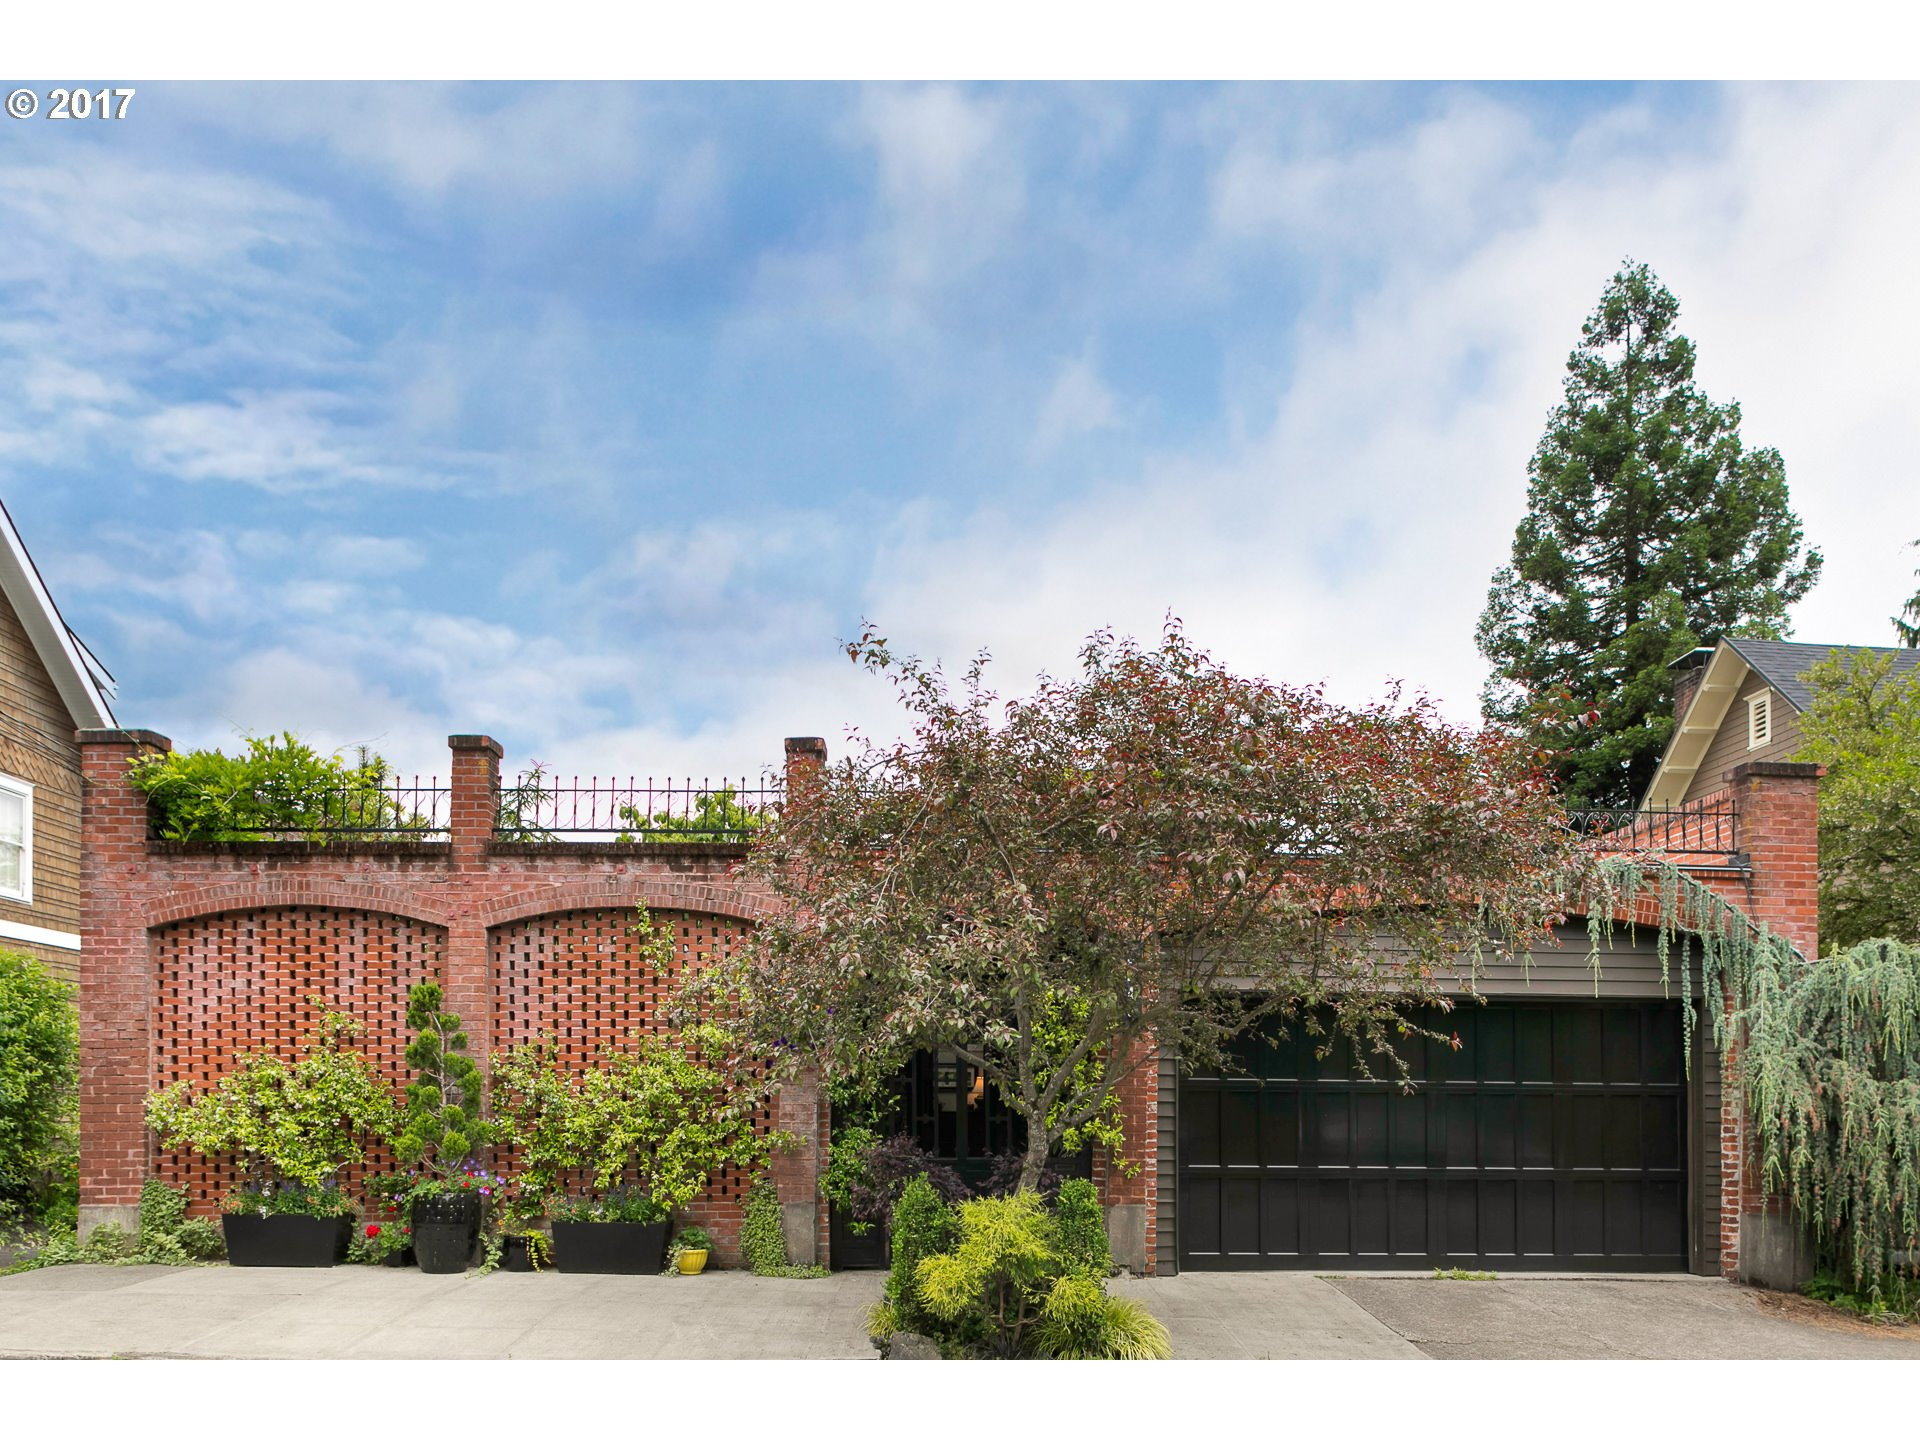 3245 NW THURMAN ST Portland, OR 97210 - MLS #: 17488813